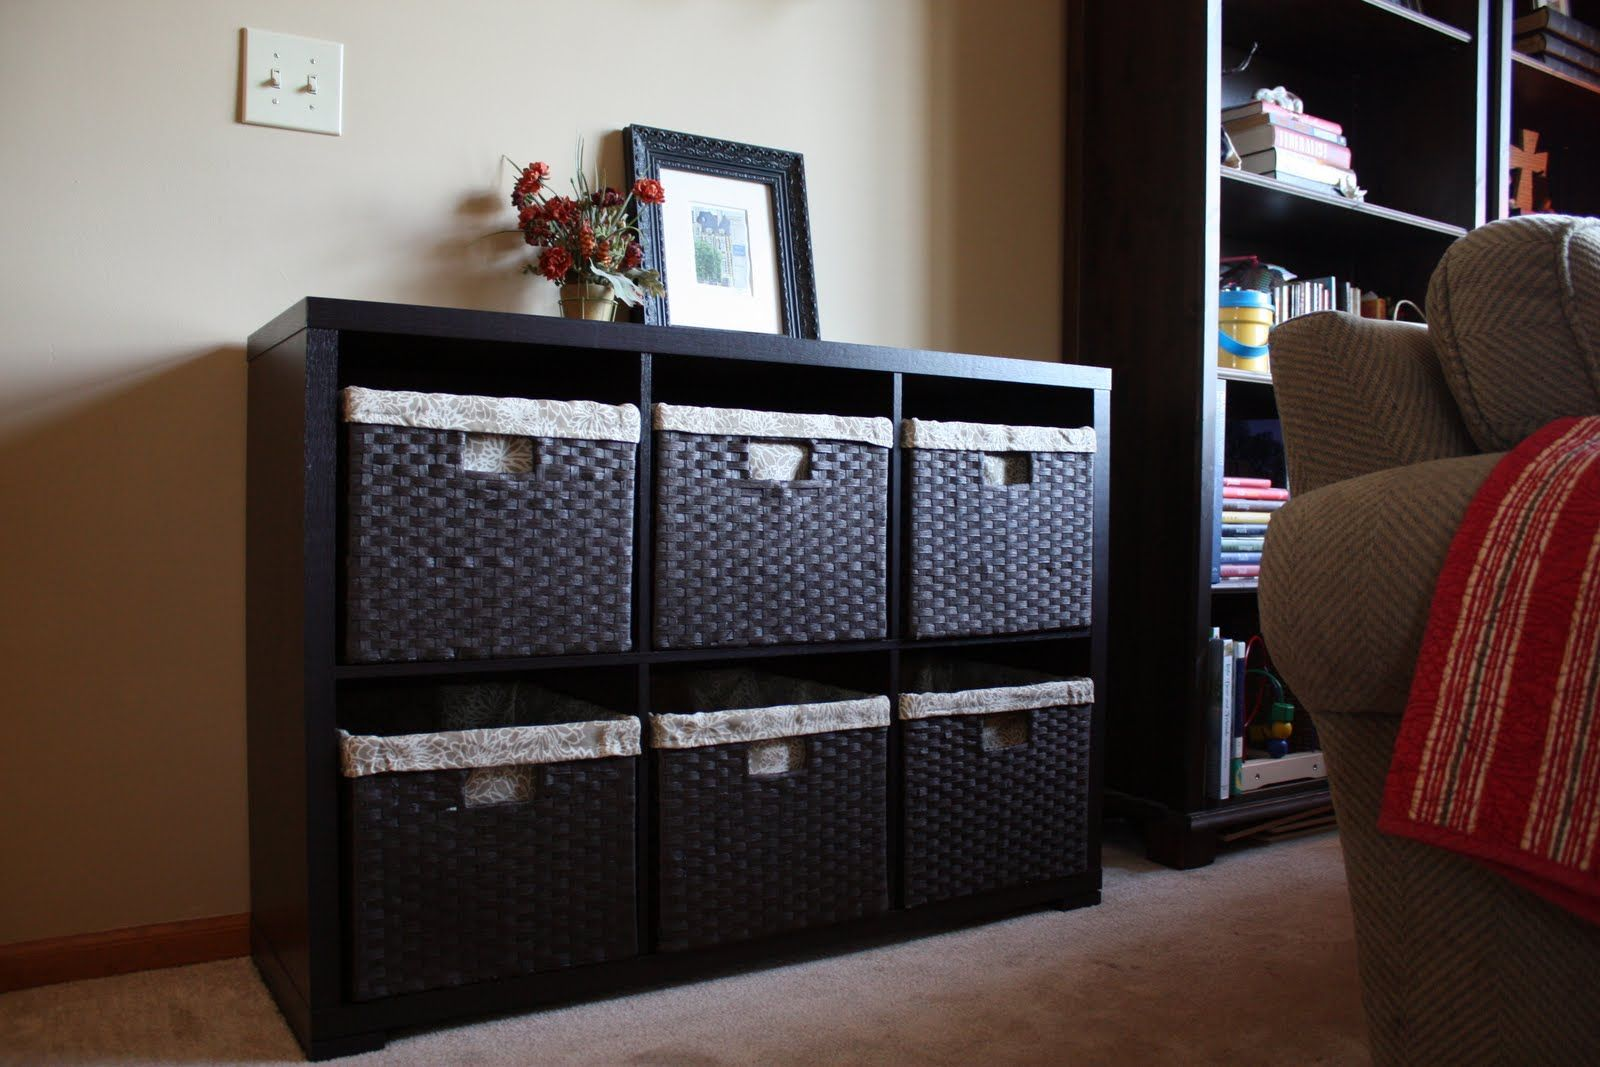 toys storage furniture. Low Basket Storage That Could Be Placed Between 2 Book Cases For In Toy Room Toys Furniture